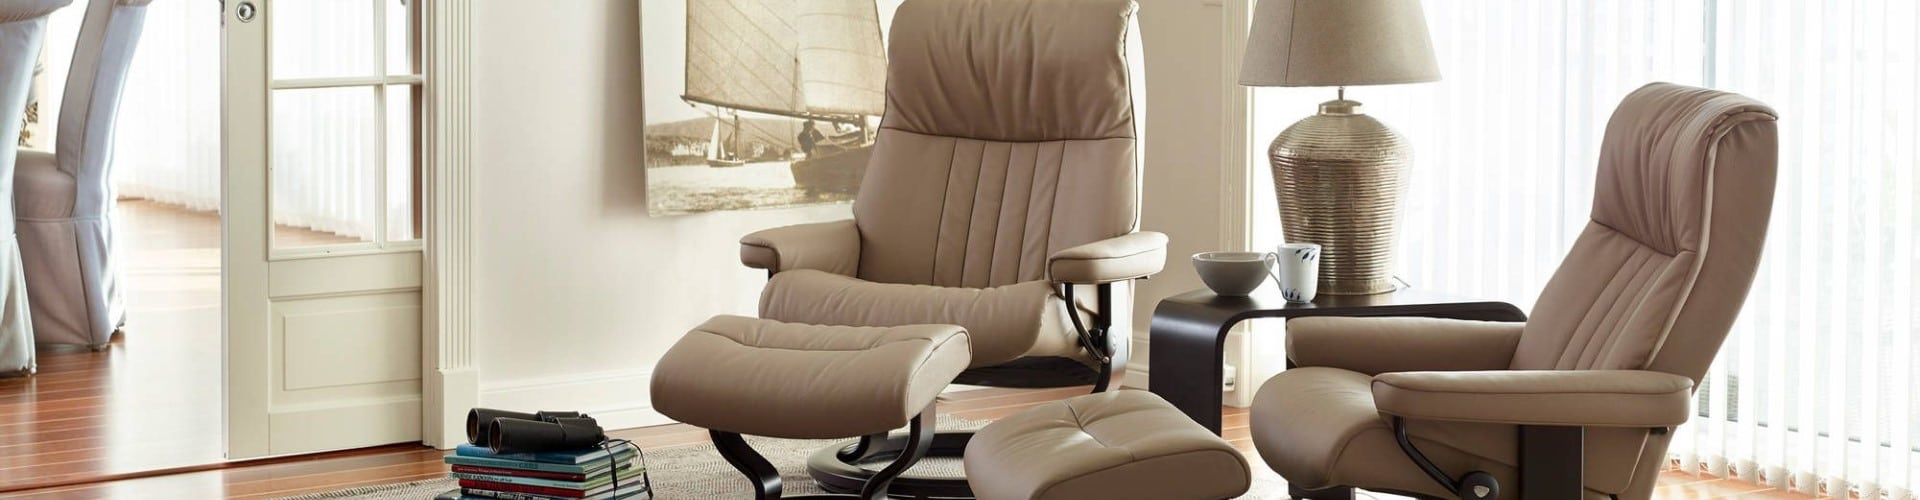 Best Recliners with Ottoman